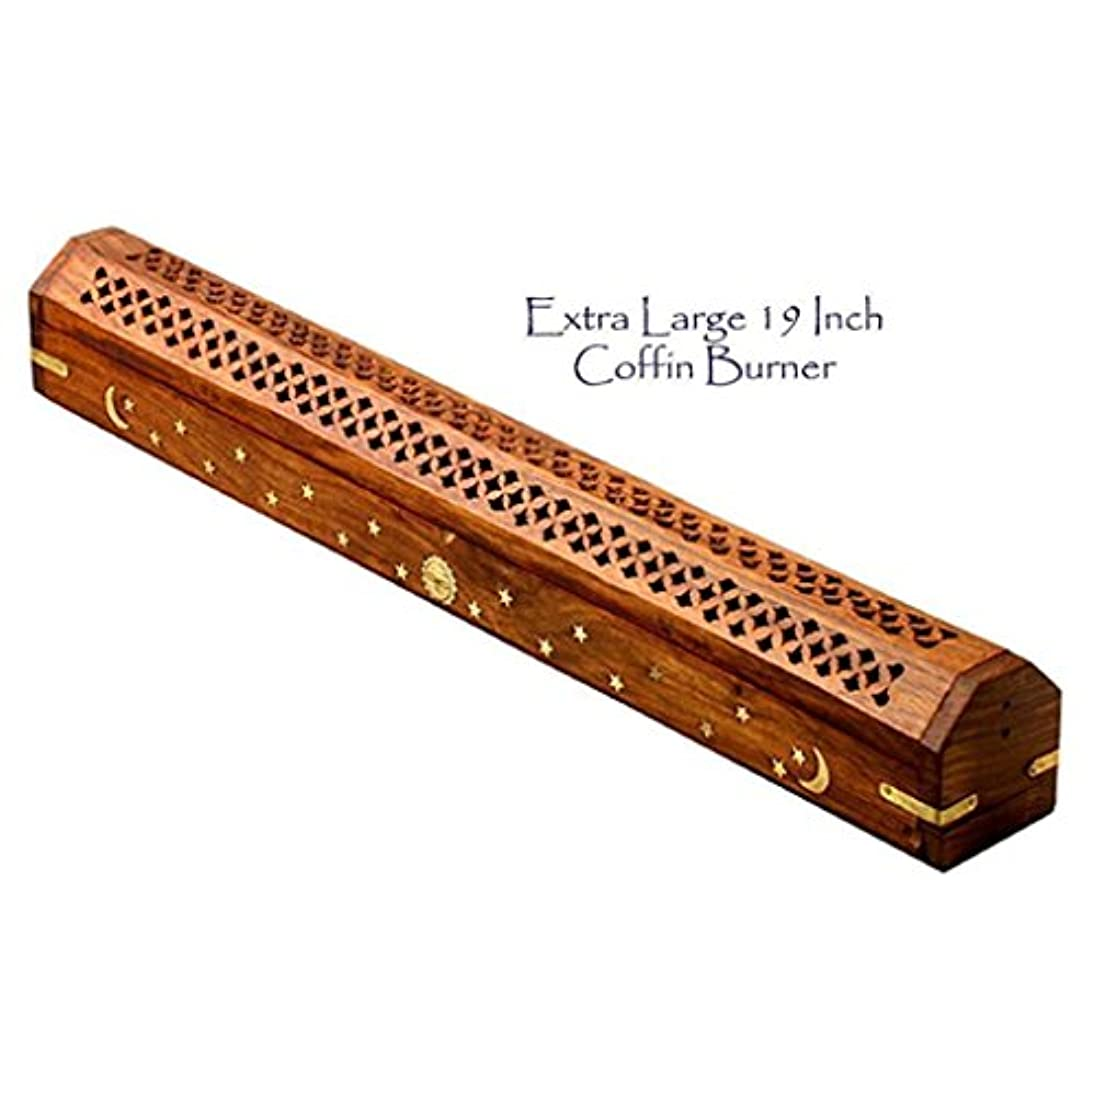 ミサイル憧れクリップ蝶The Parfumerie Incense CoFfIn / Burner Extra Large for 19 in。Incense Sticks – 真鍮月&星